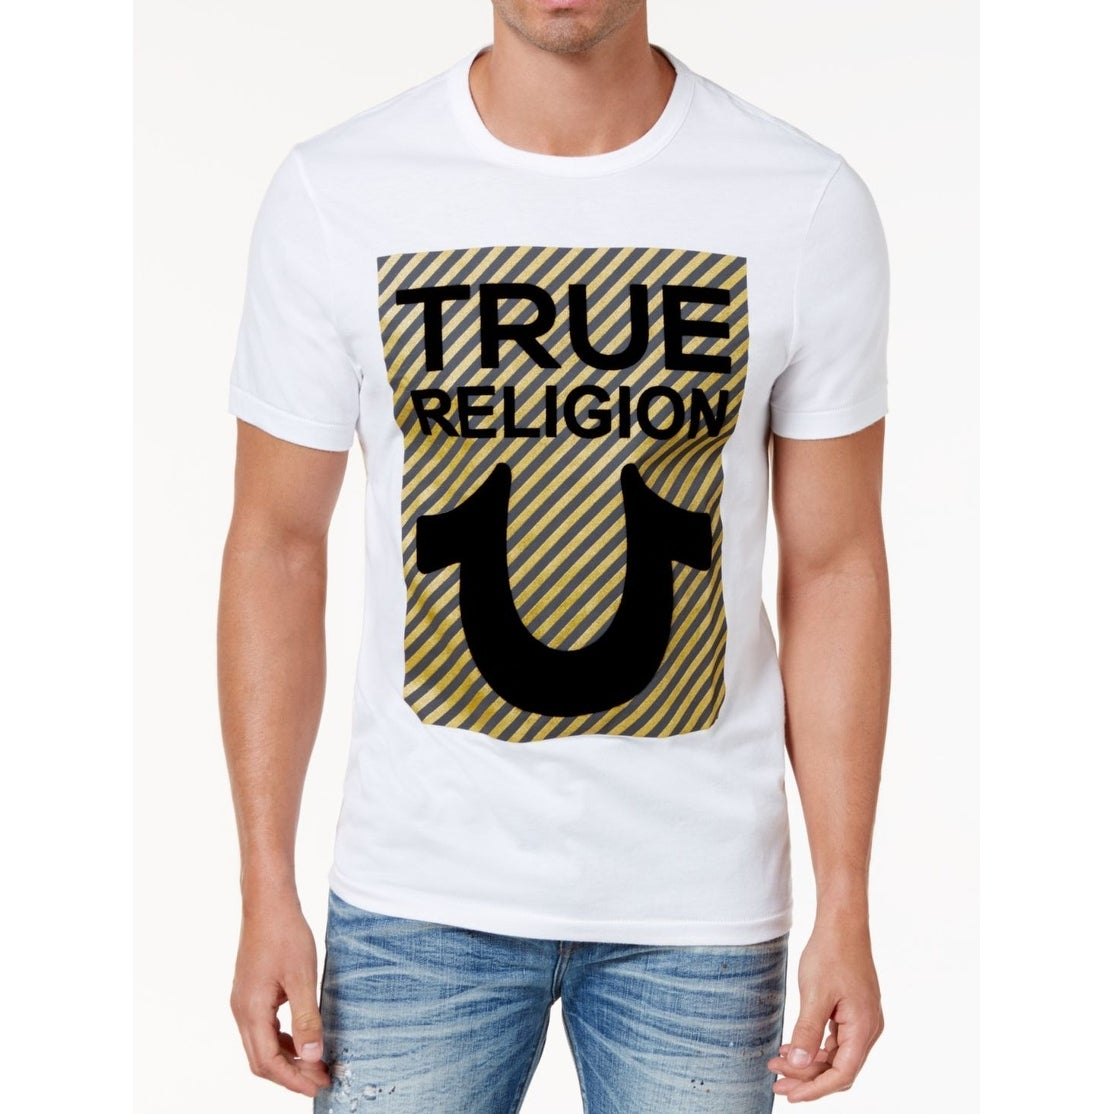 5c88d357fee56 True Religion T Shirt Mens | Kuenzi Turf & Nursery